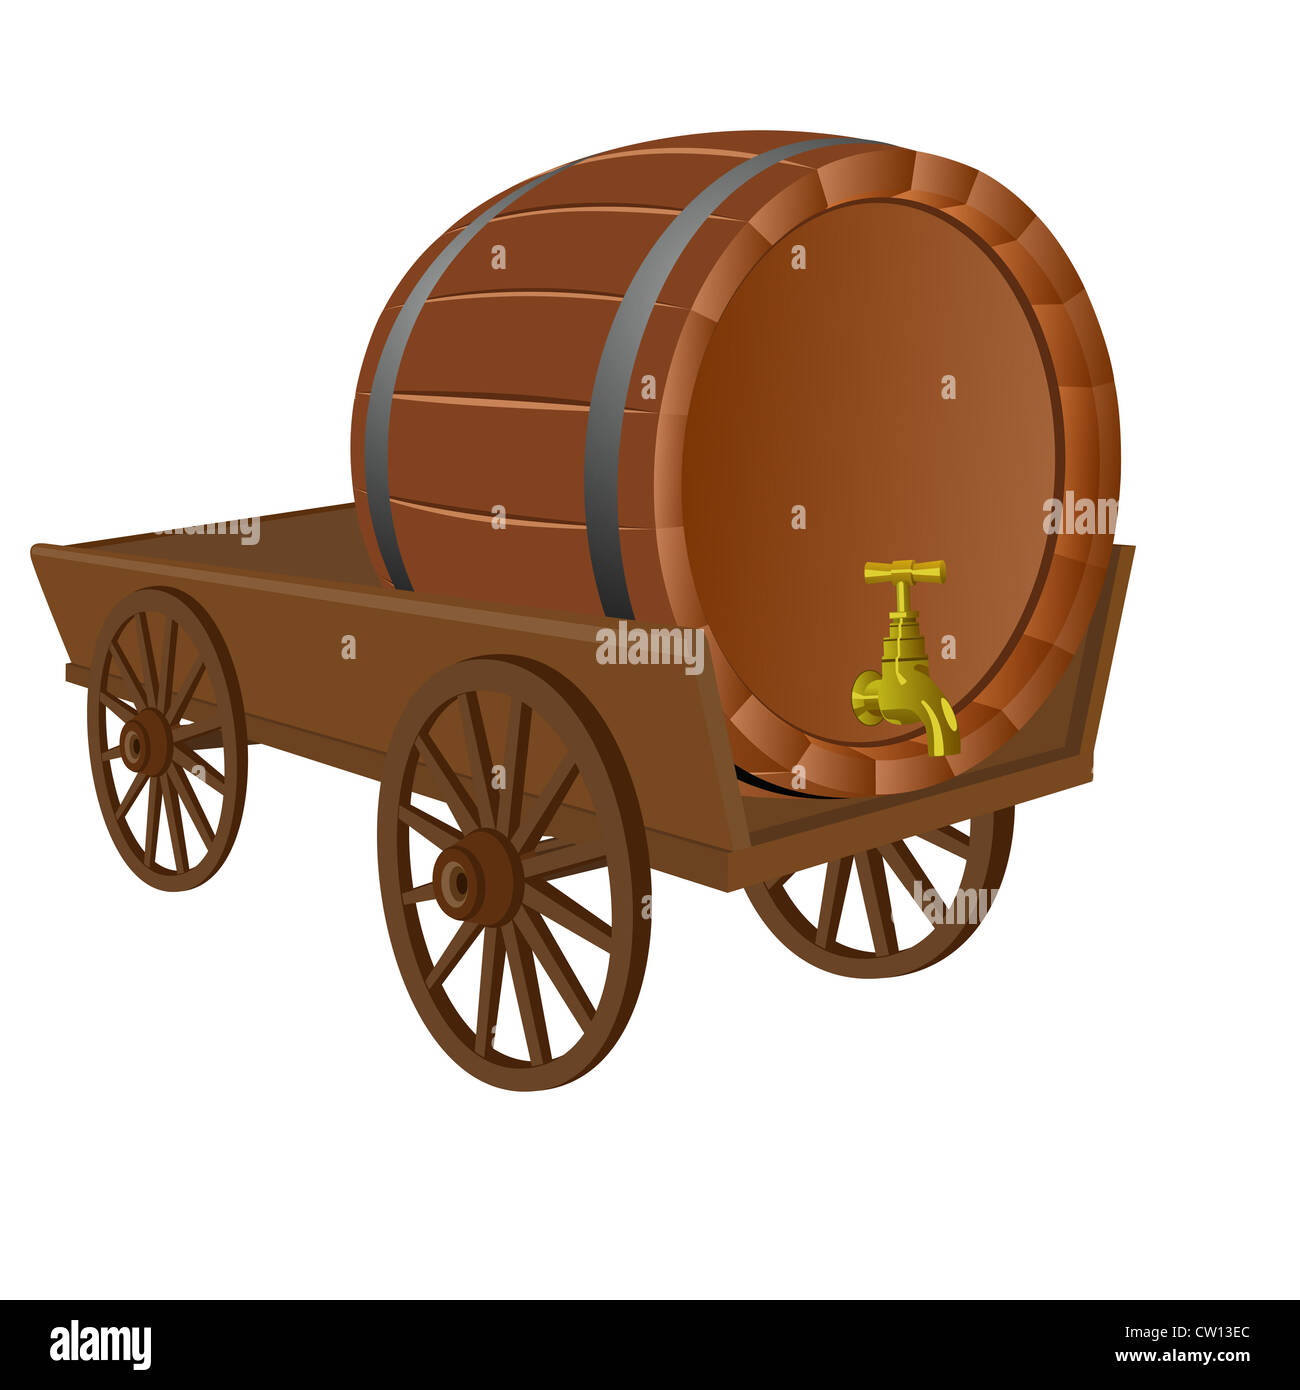 Cart with a keg - Stock Image